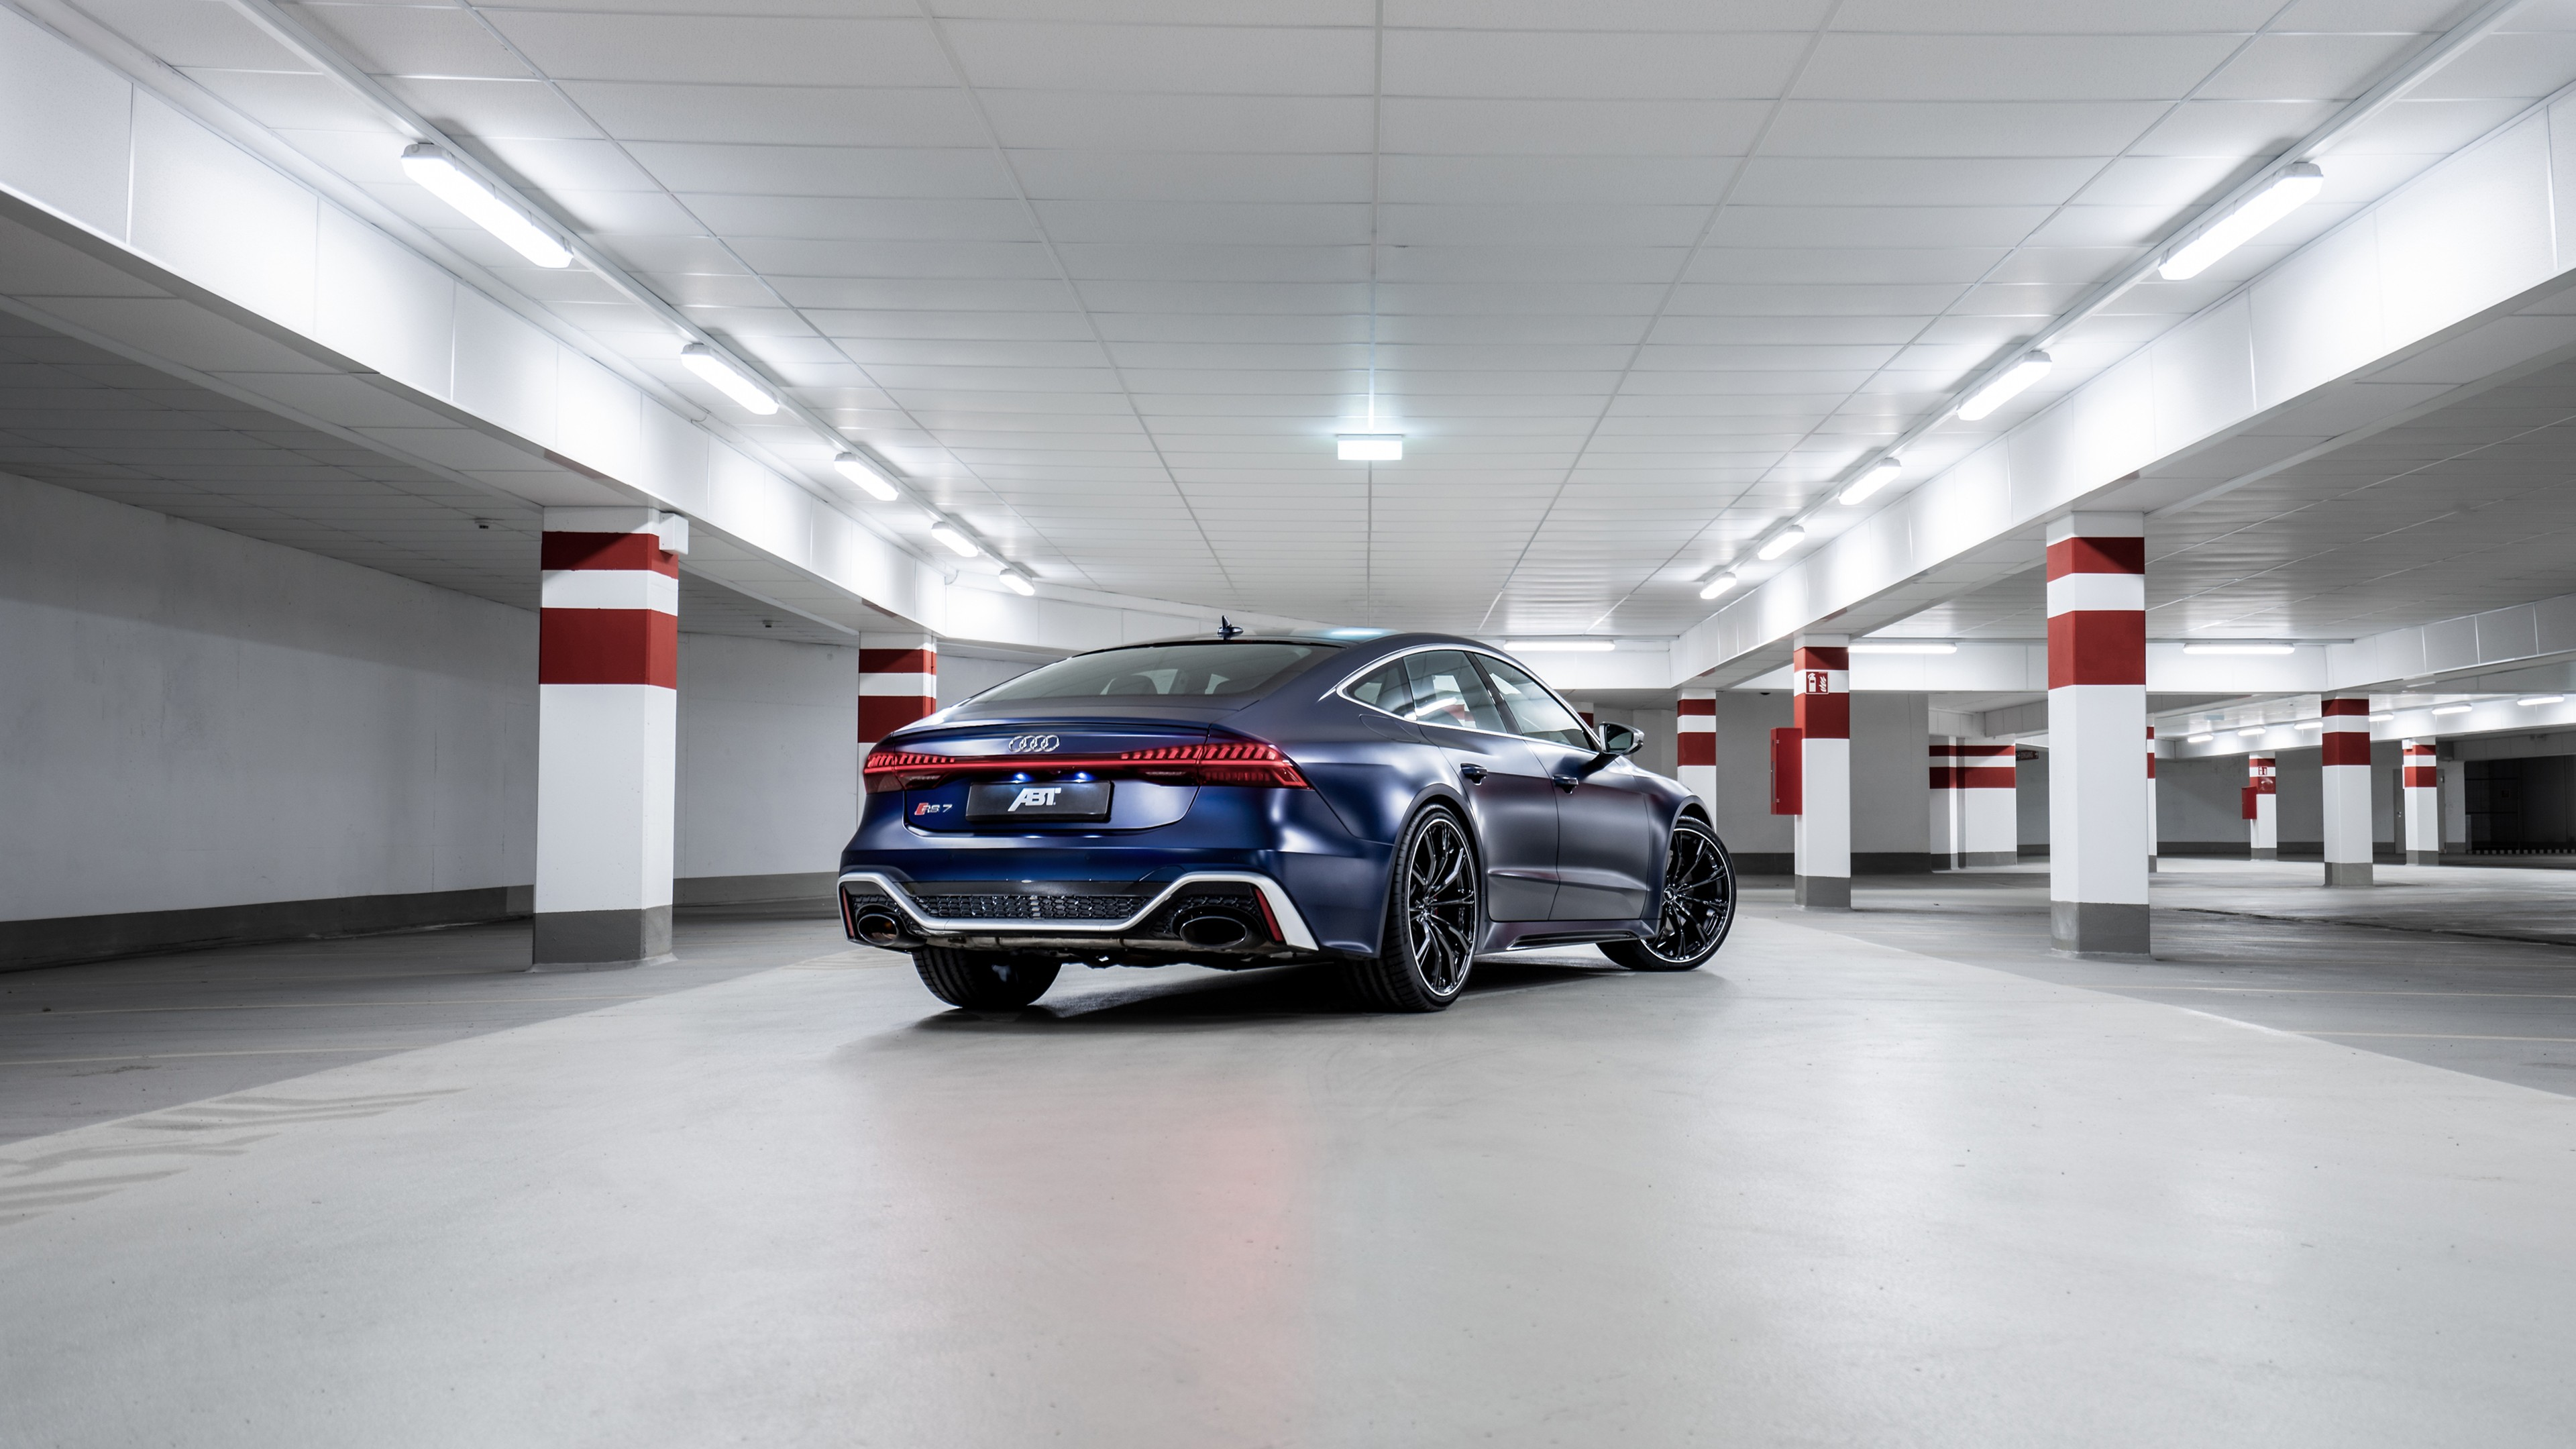 Wallpaper 2020 Audi RS 7 Sportback underground parking rear view